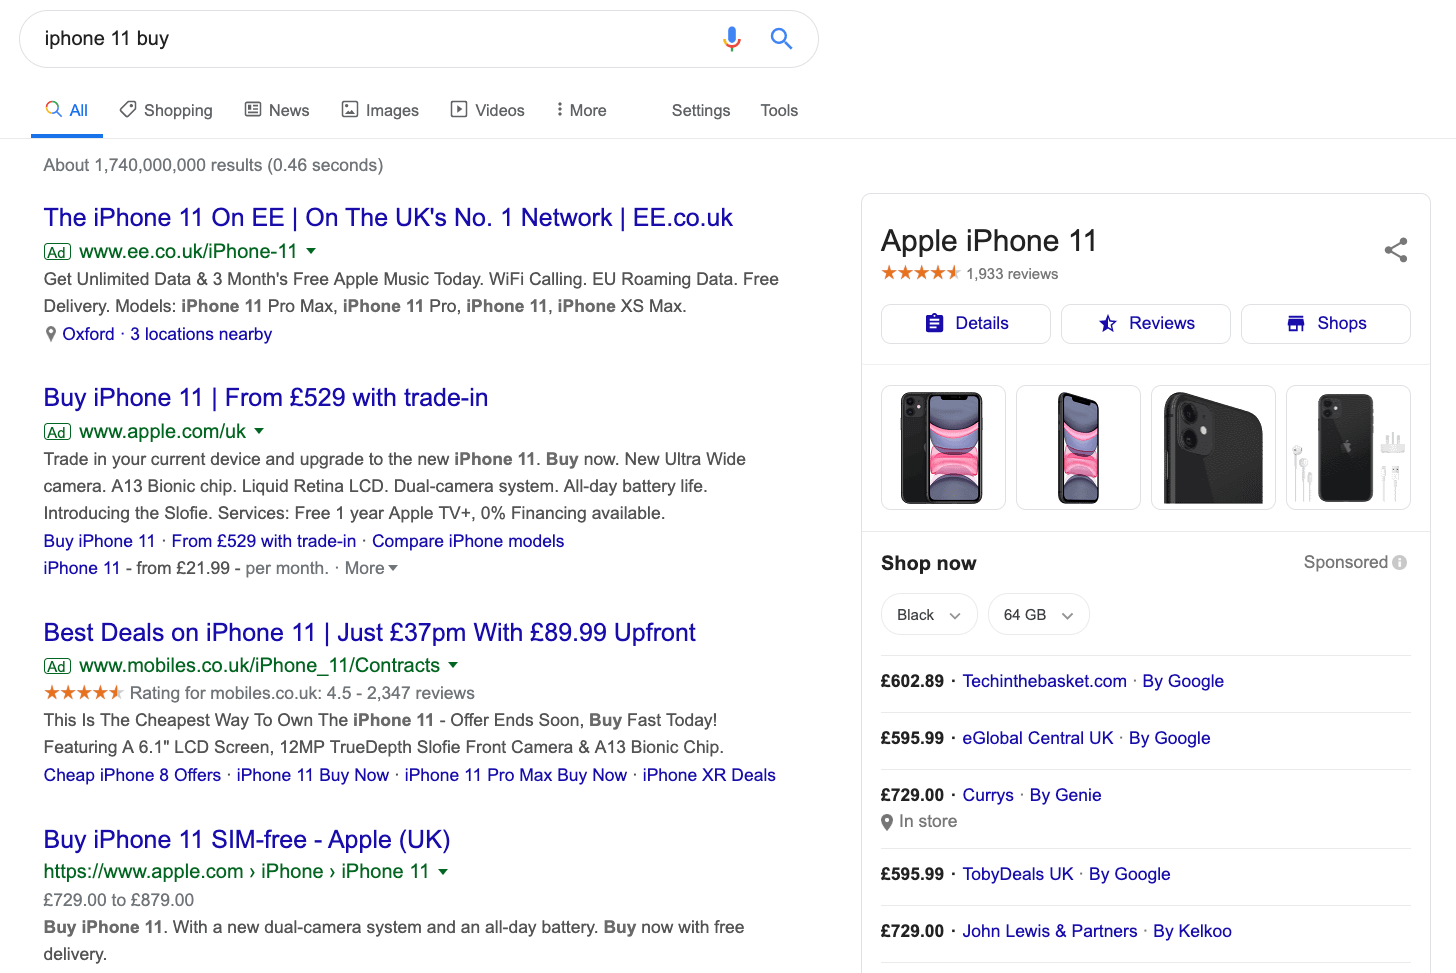 iphone 11 buy google search